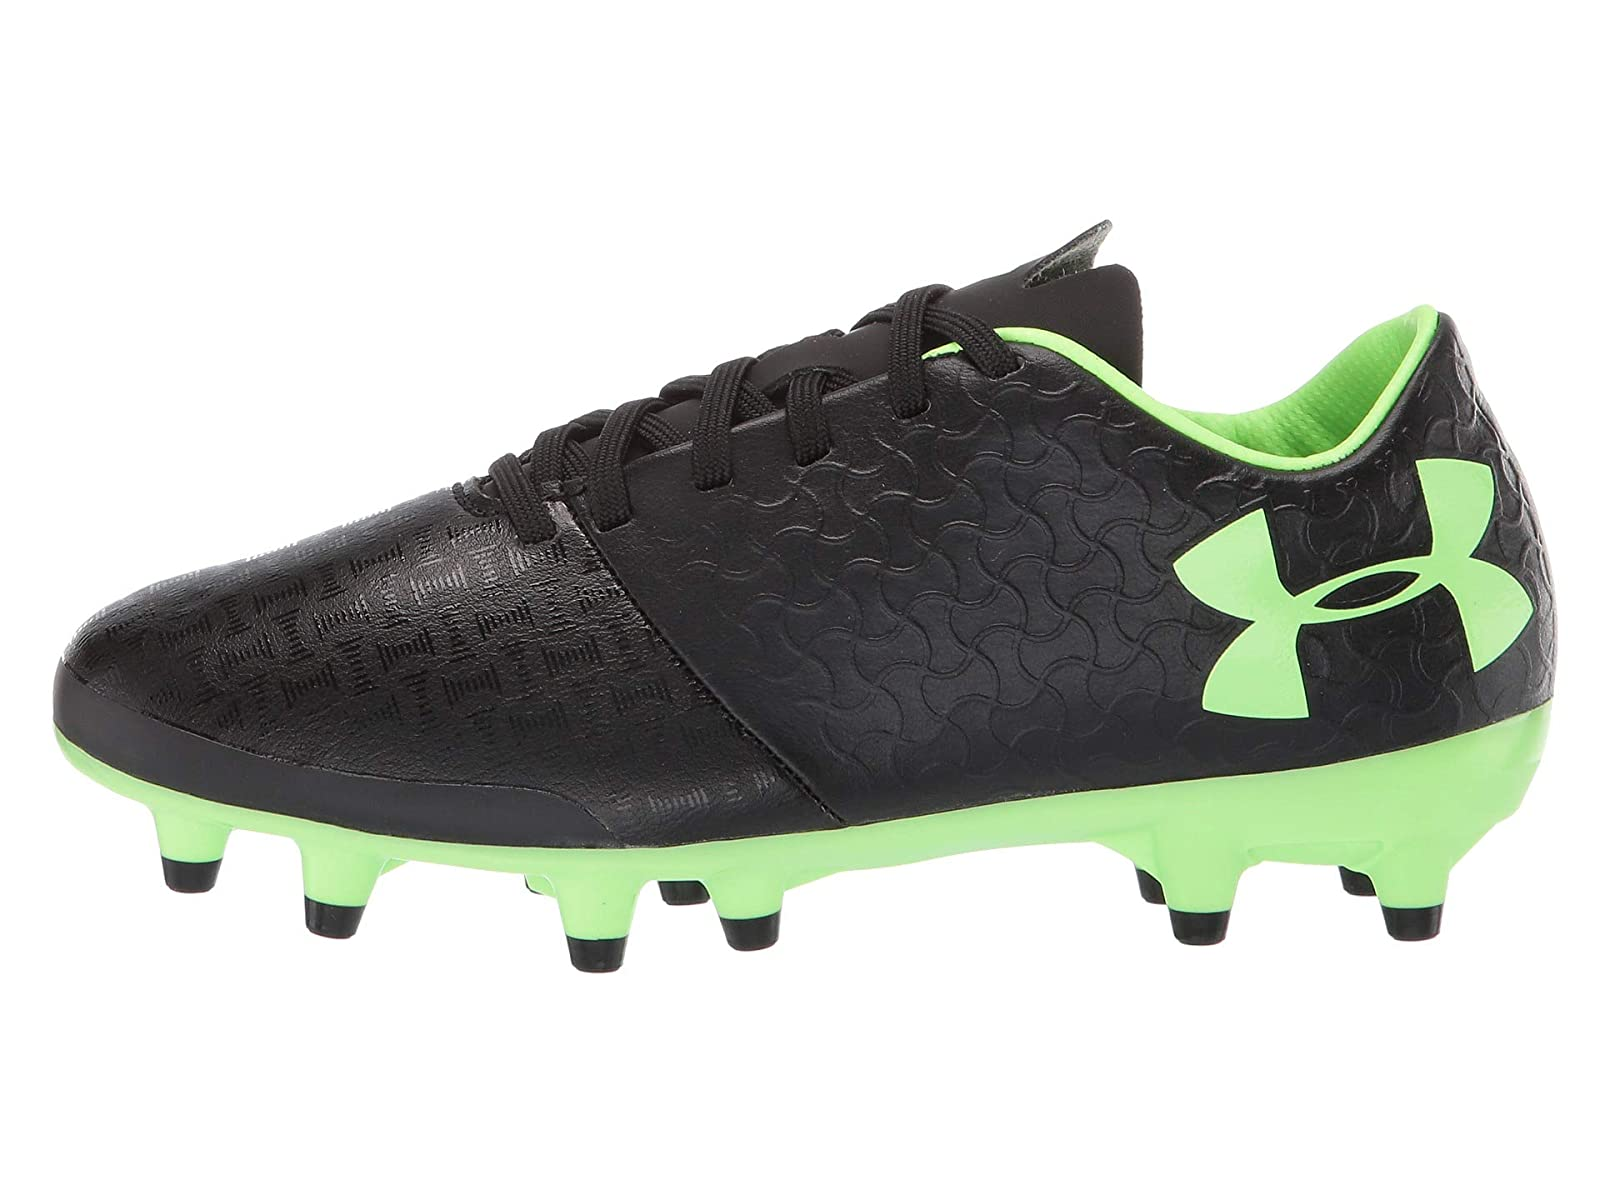 Under Armour Unisex Kids/' Magnetico Select Fg Jr Football Boots